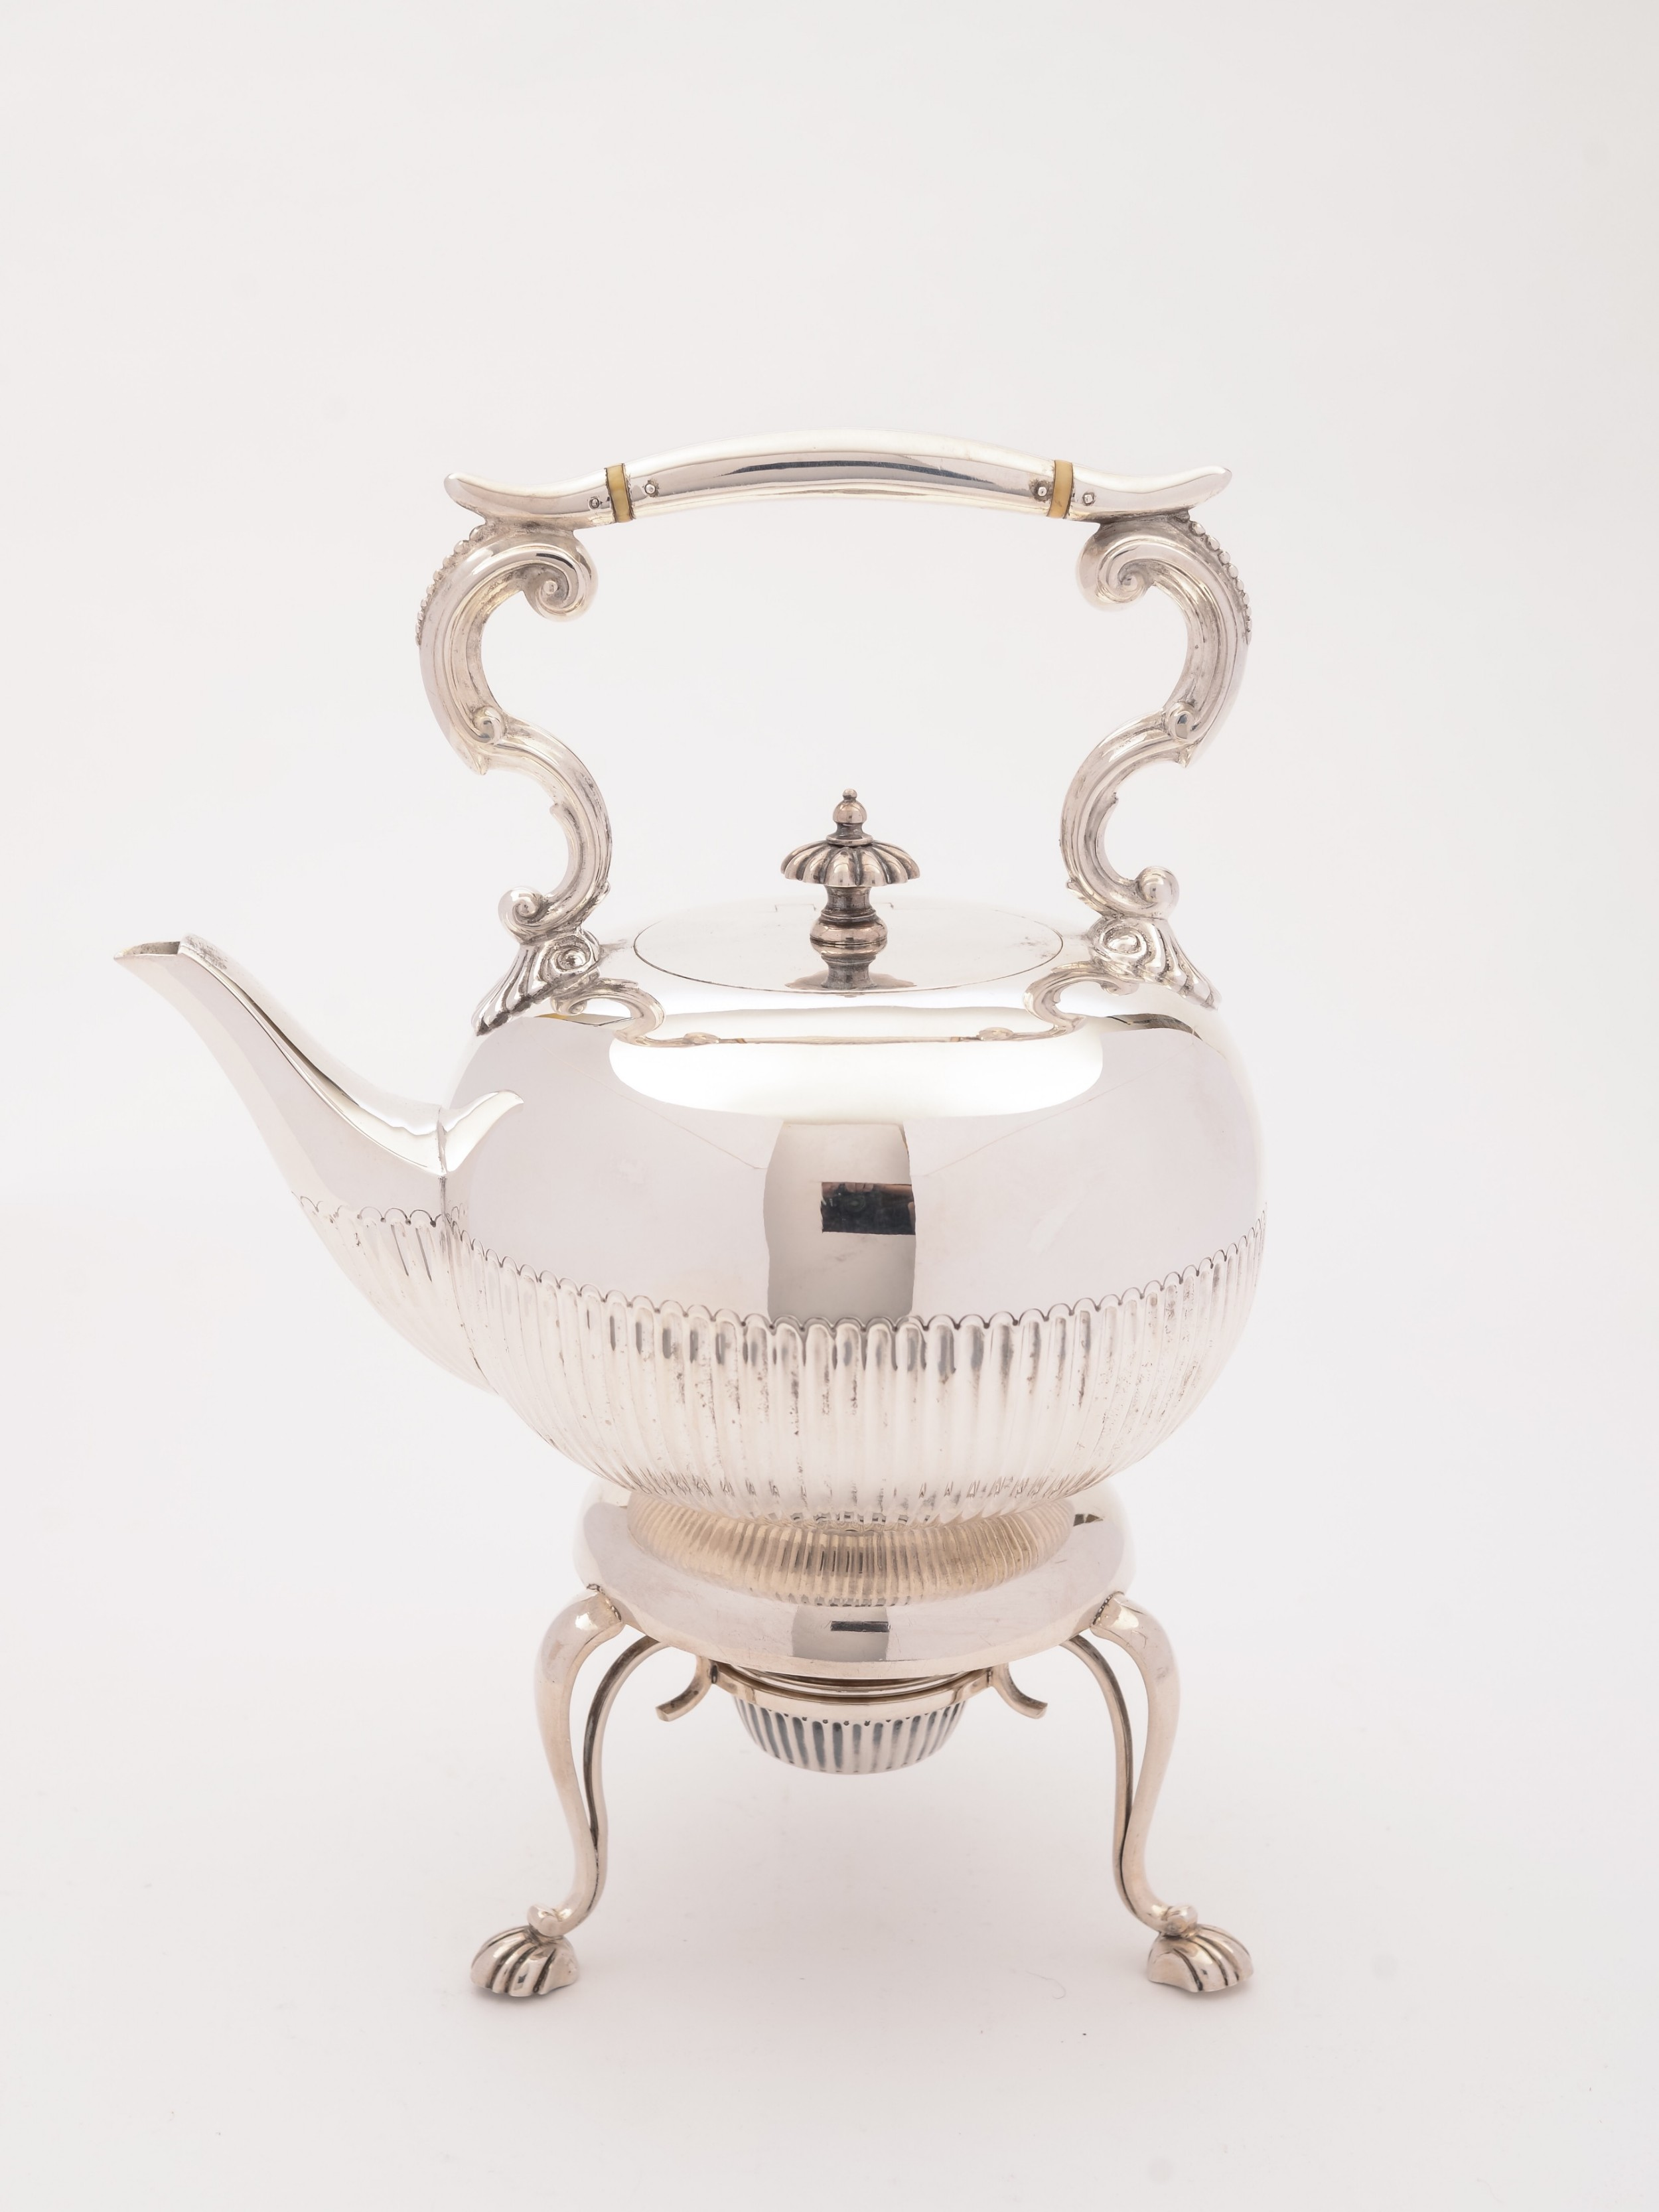 edwardian silver zplated kettle on stand circa 1905